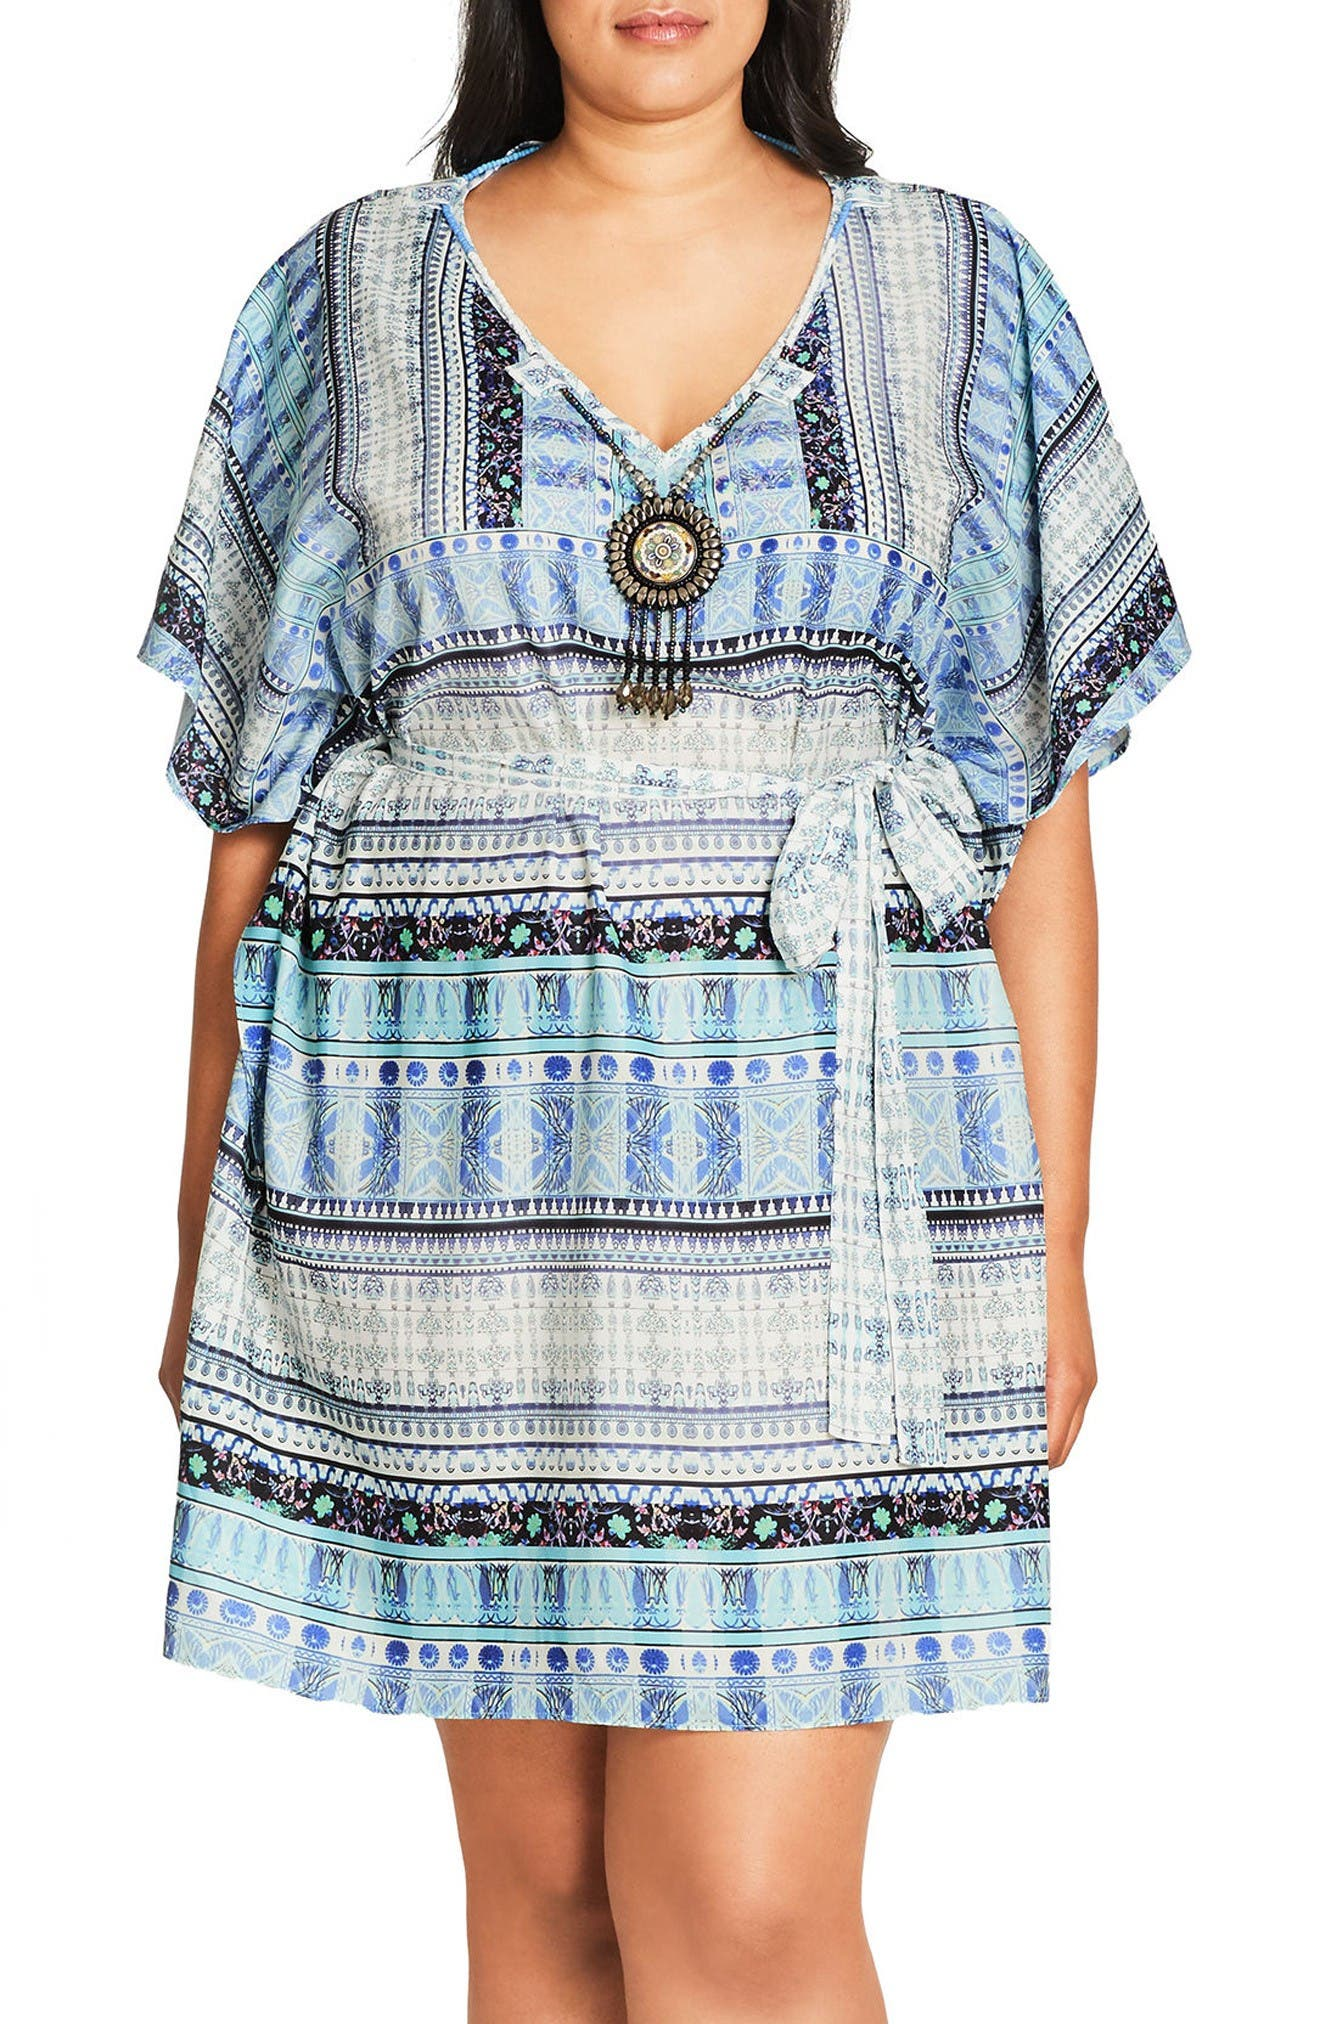 City Chic 'Moroccan Affair' Embellished Print Tunic (Plus Size)